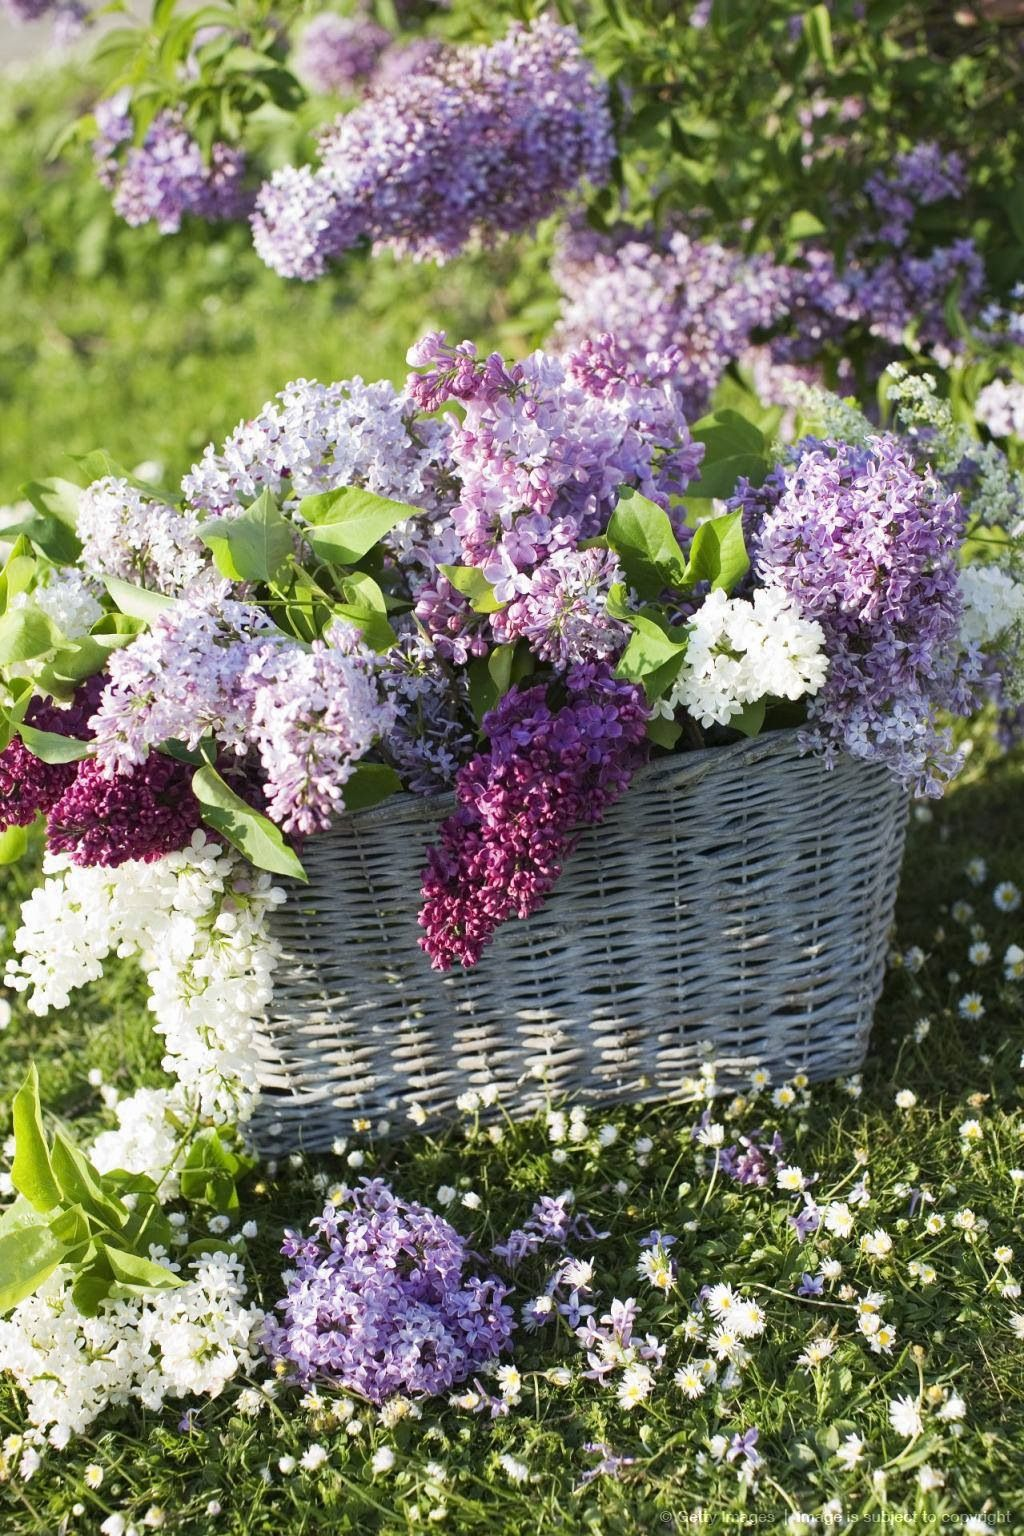 lilacs baskets full of pinterest flieder. Black Bedroom Furniture Sets. Home Design Ideas